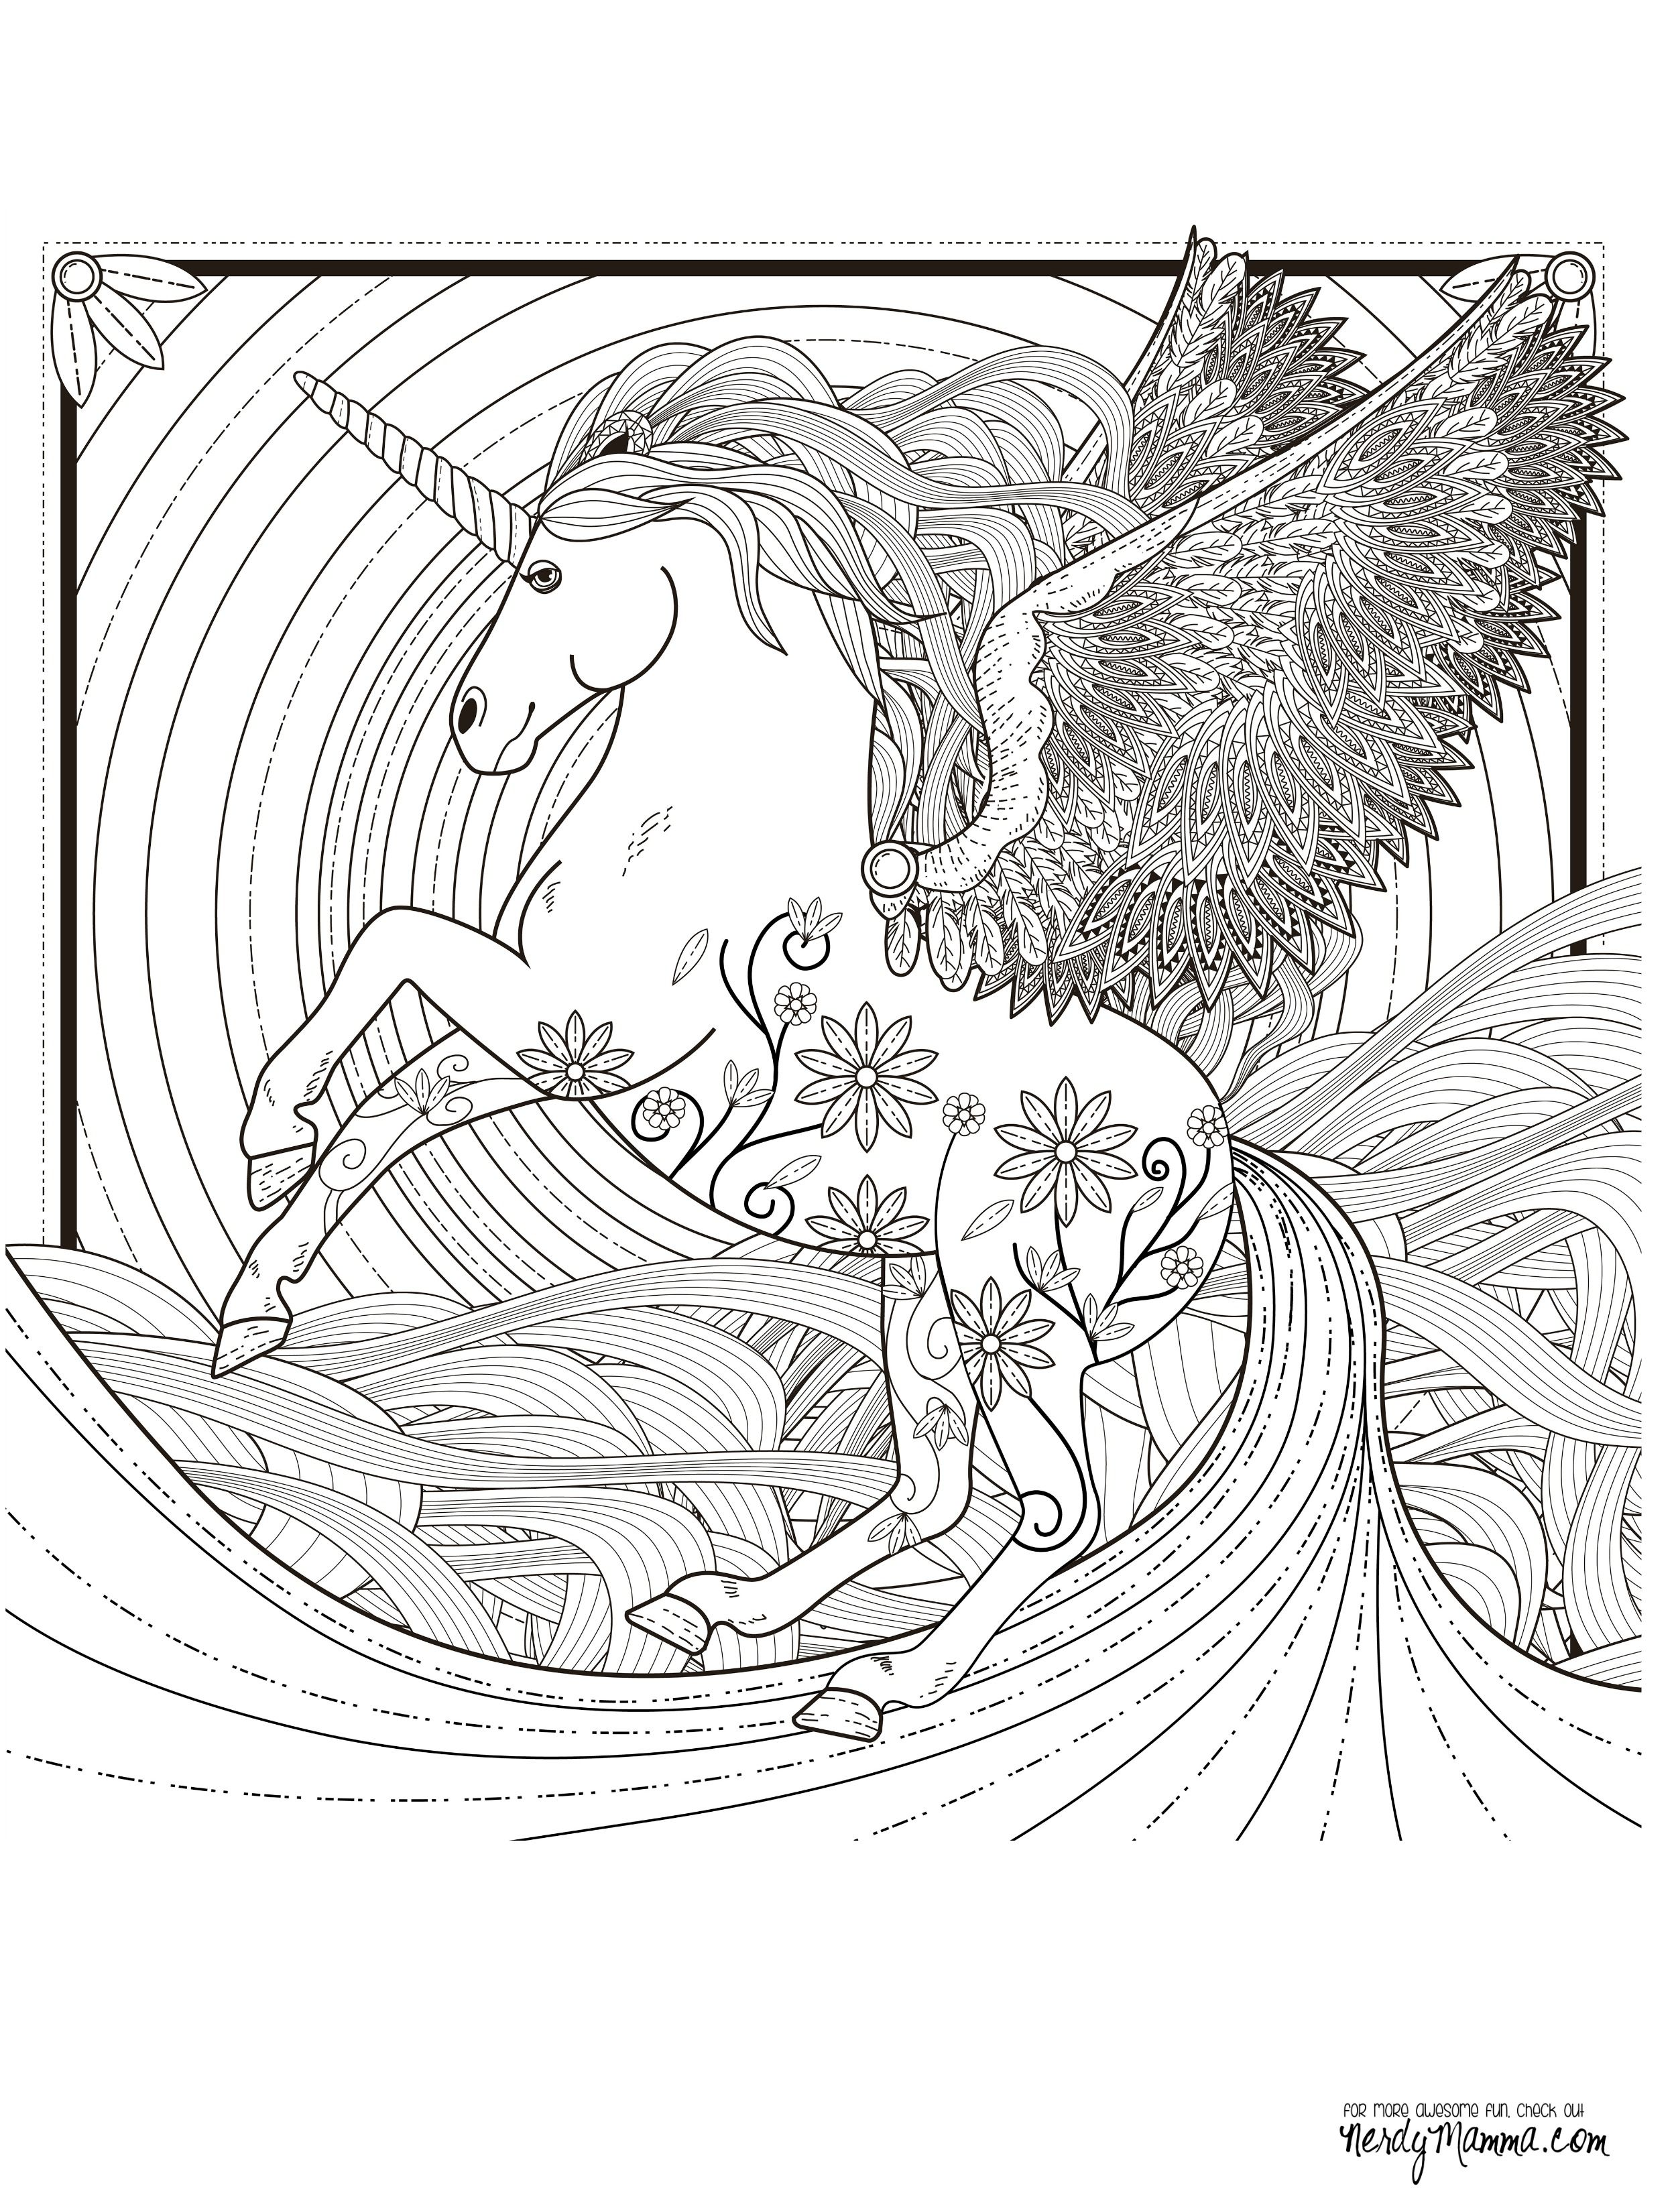 11 Free Printable Adult Coloring Pages Coloring Pages